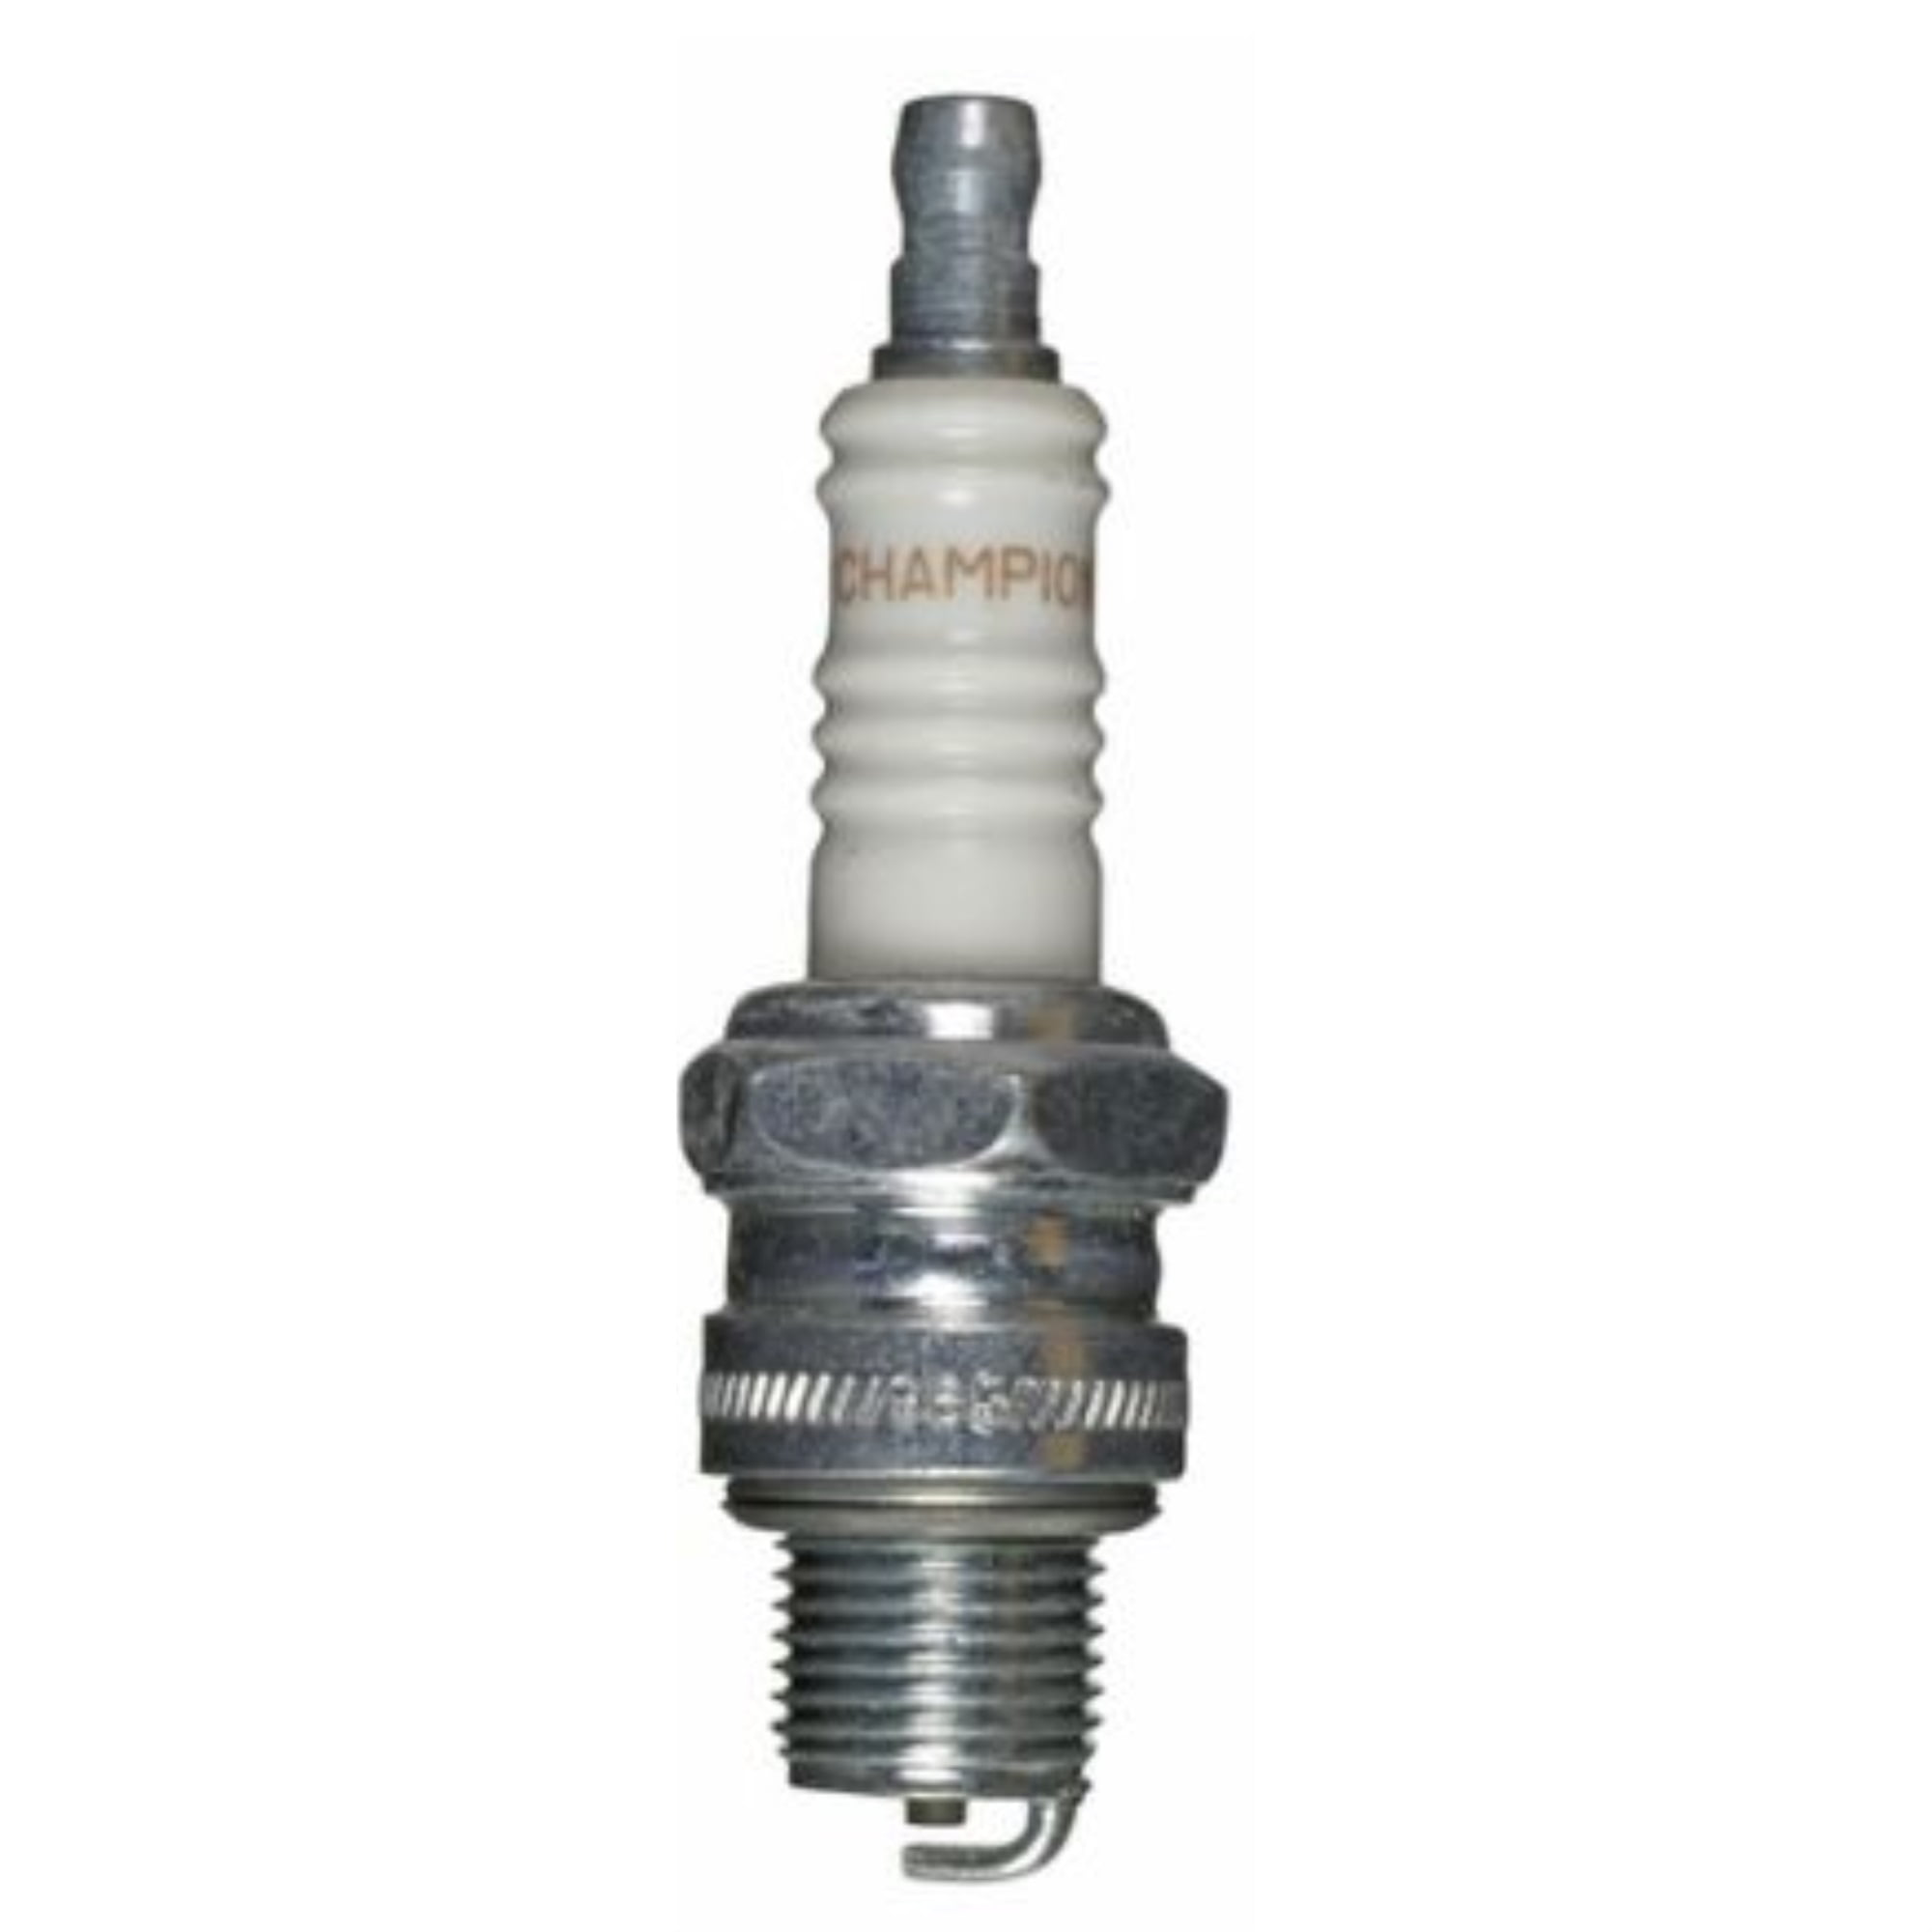 NEW CHAMPION SPARK PLUG L82C 811 FREE SHIPPING